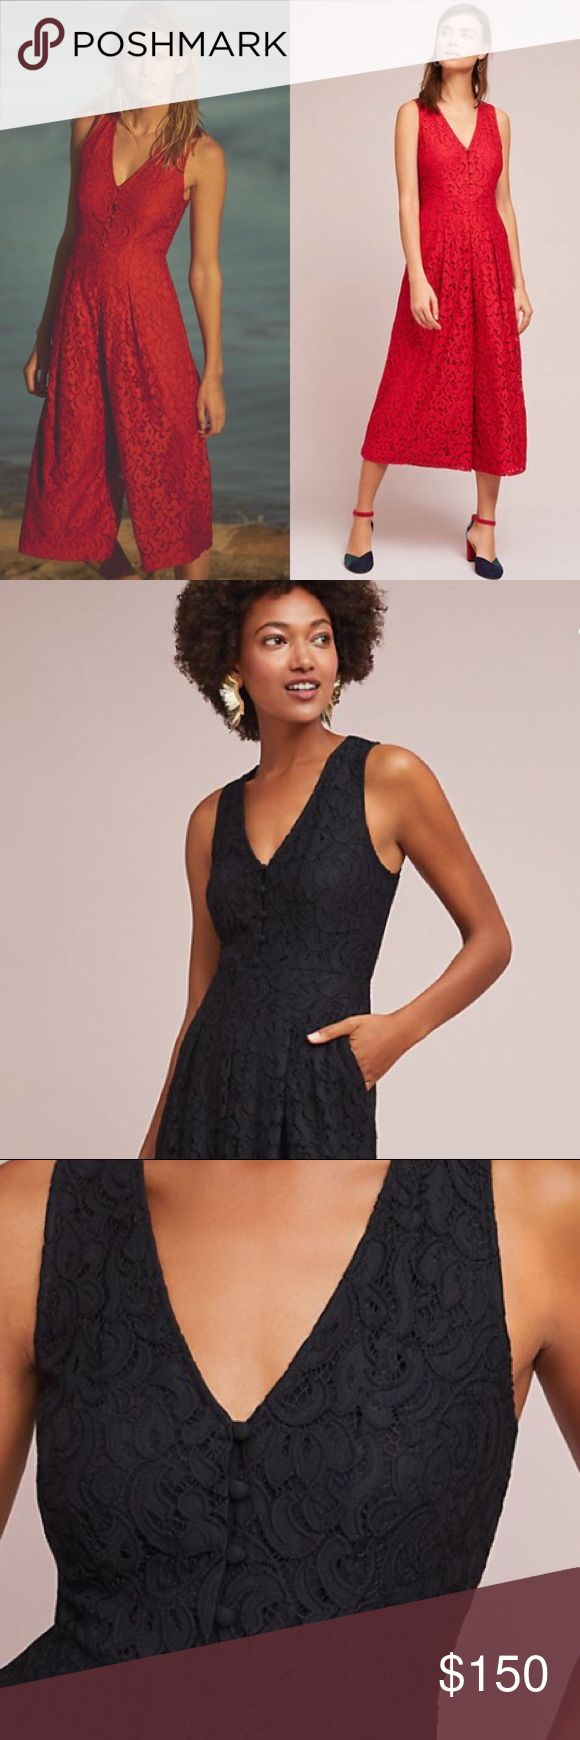 """anthropologie // black lace wide-leg jumpsuit NWT Anthropologie midi sleeveless black wide-leg lace jumpsuit with v-neck, pockets and button at back closure. 49"""" length. Hem hits at calf.  NOTE: red shown for fit/modeling. Color for sale is BLACK. Anthropologie Pants Jumpsuits & Rompers"""